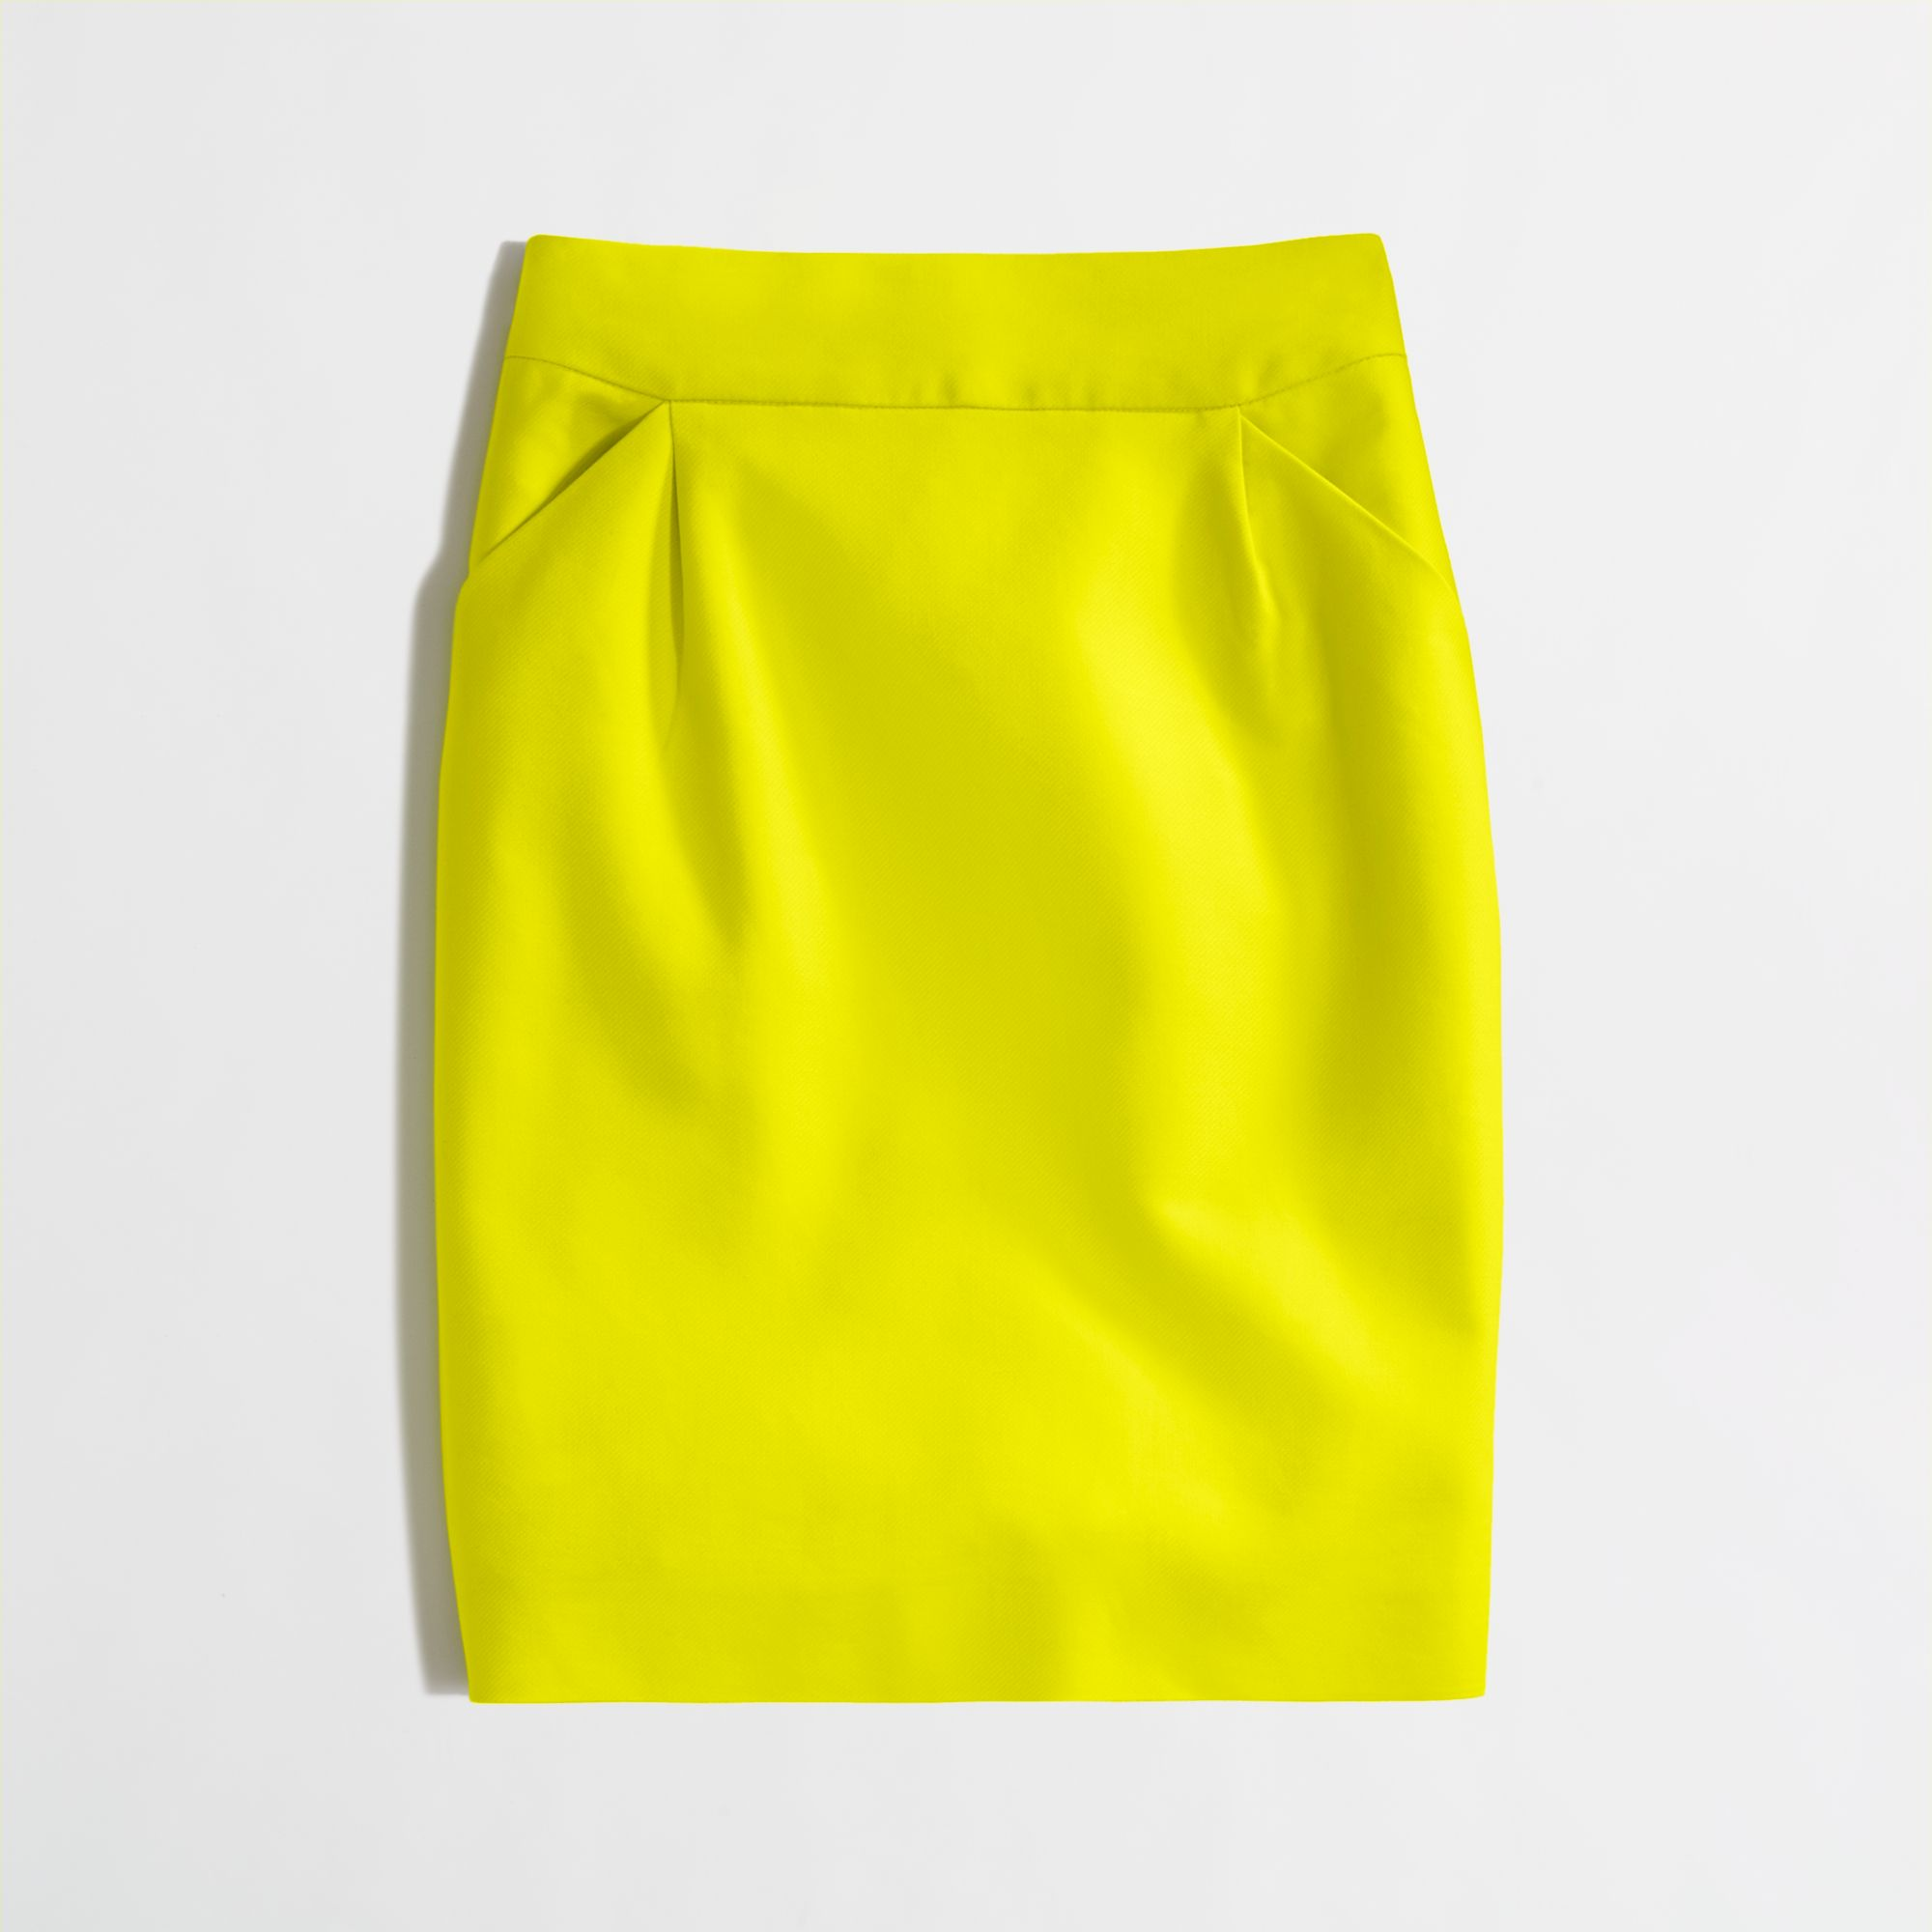 72a7c122a J.Crew Factory Pencil Skirt in Doubleserge Cotton in Yellow - Lyst